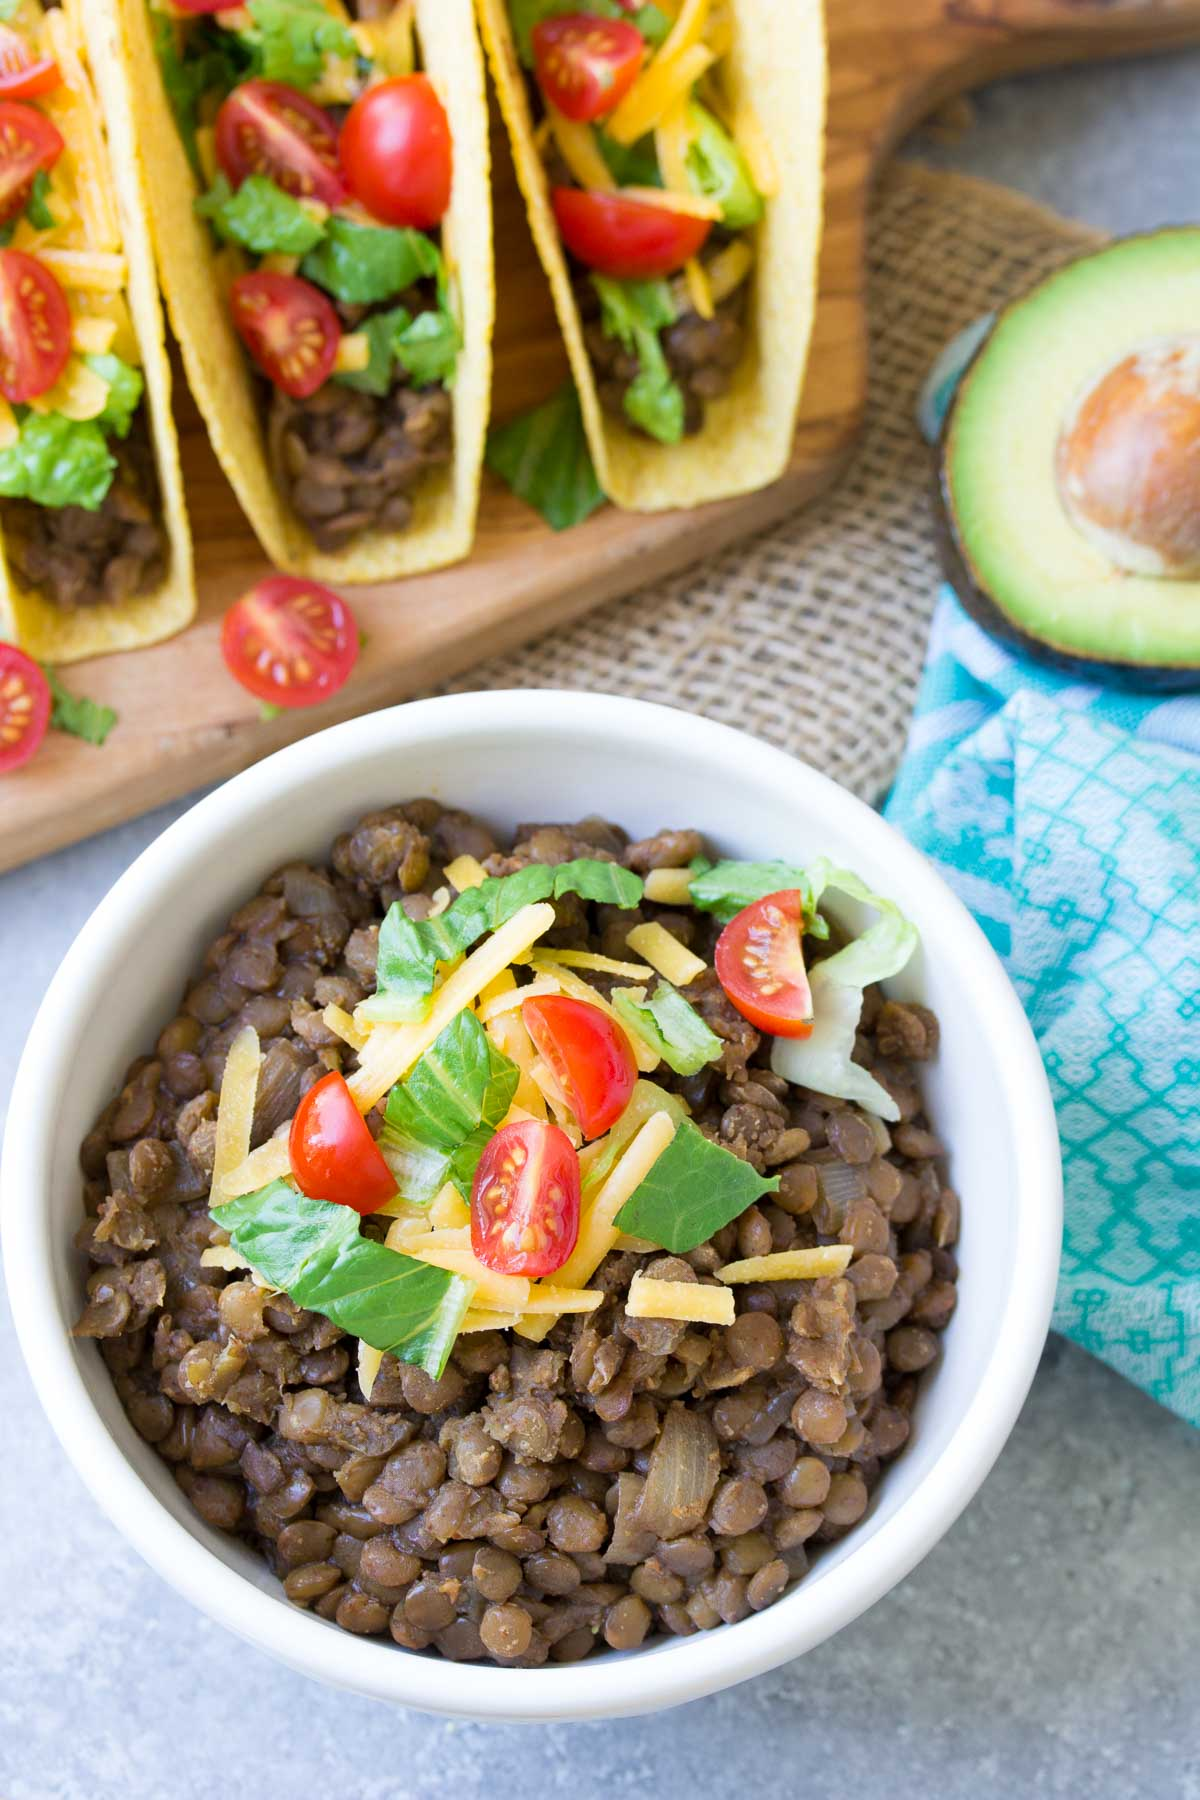 These Slow Cooker Lentil Tacos are easy to prepare and the filling is freezer-friendly. This healthy slow cooker vegetarian taco filling is also vegan (if you leave off the cheese). My family loves these crock pot tacos!